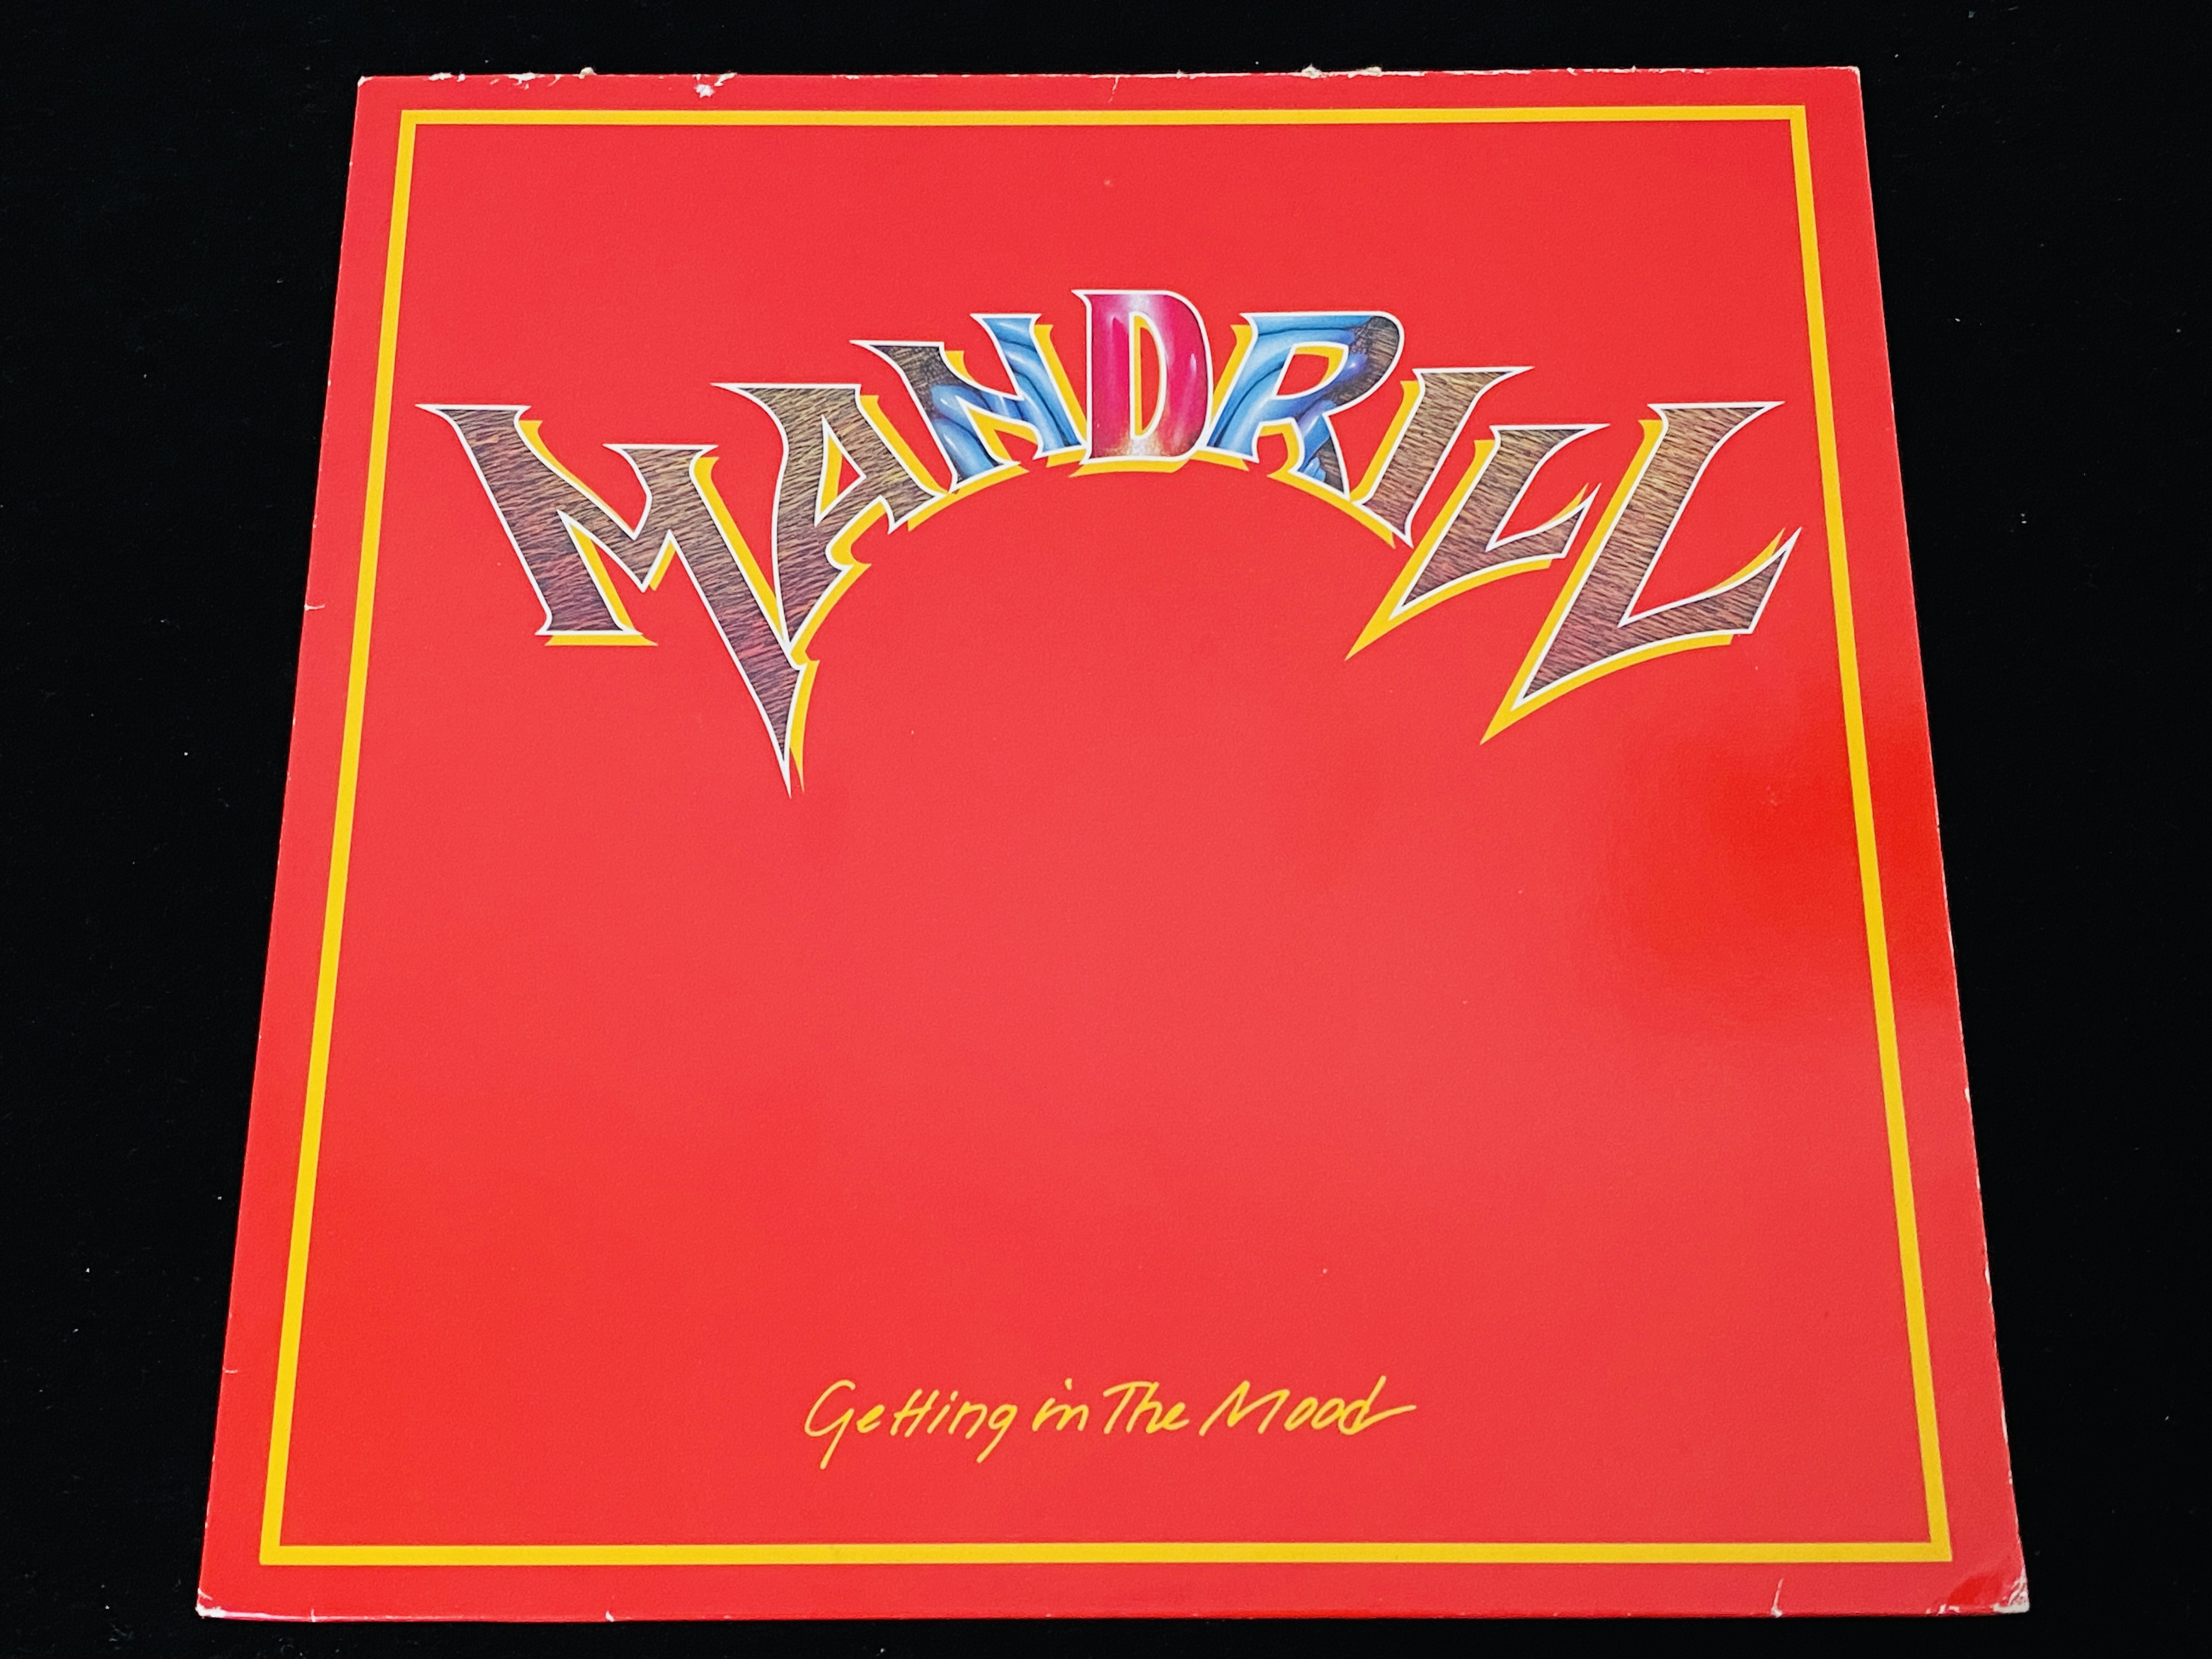 Mandrill - Getting in the Mood (NL, 1980)